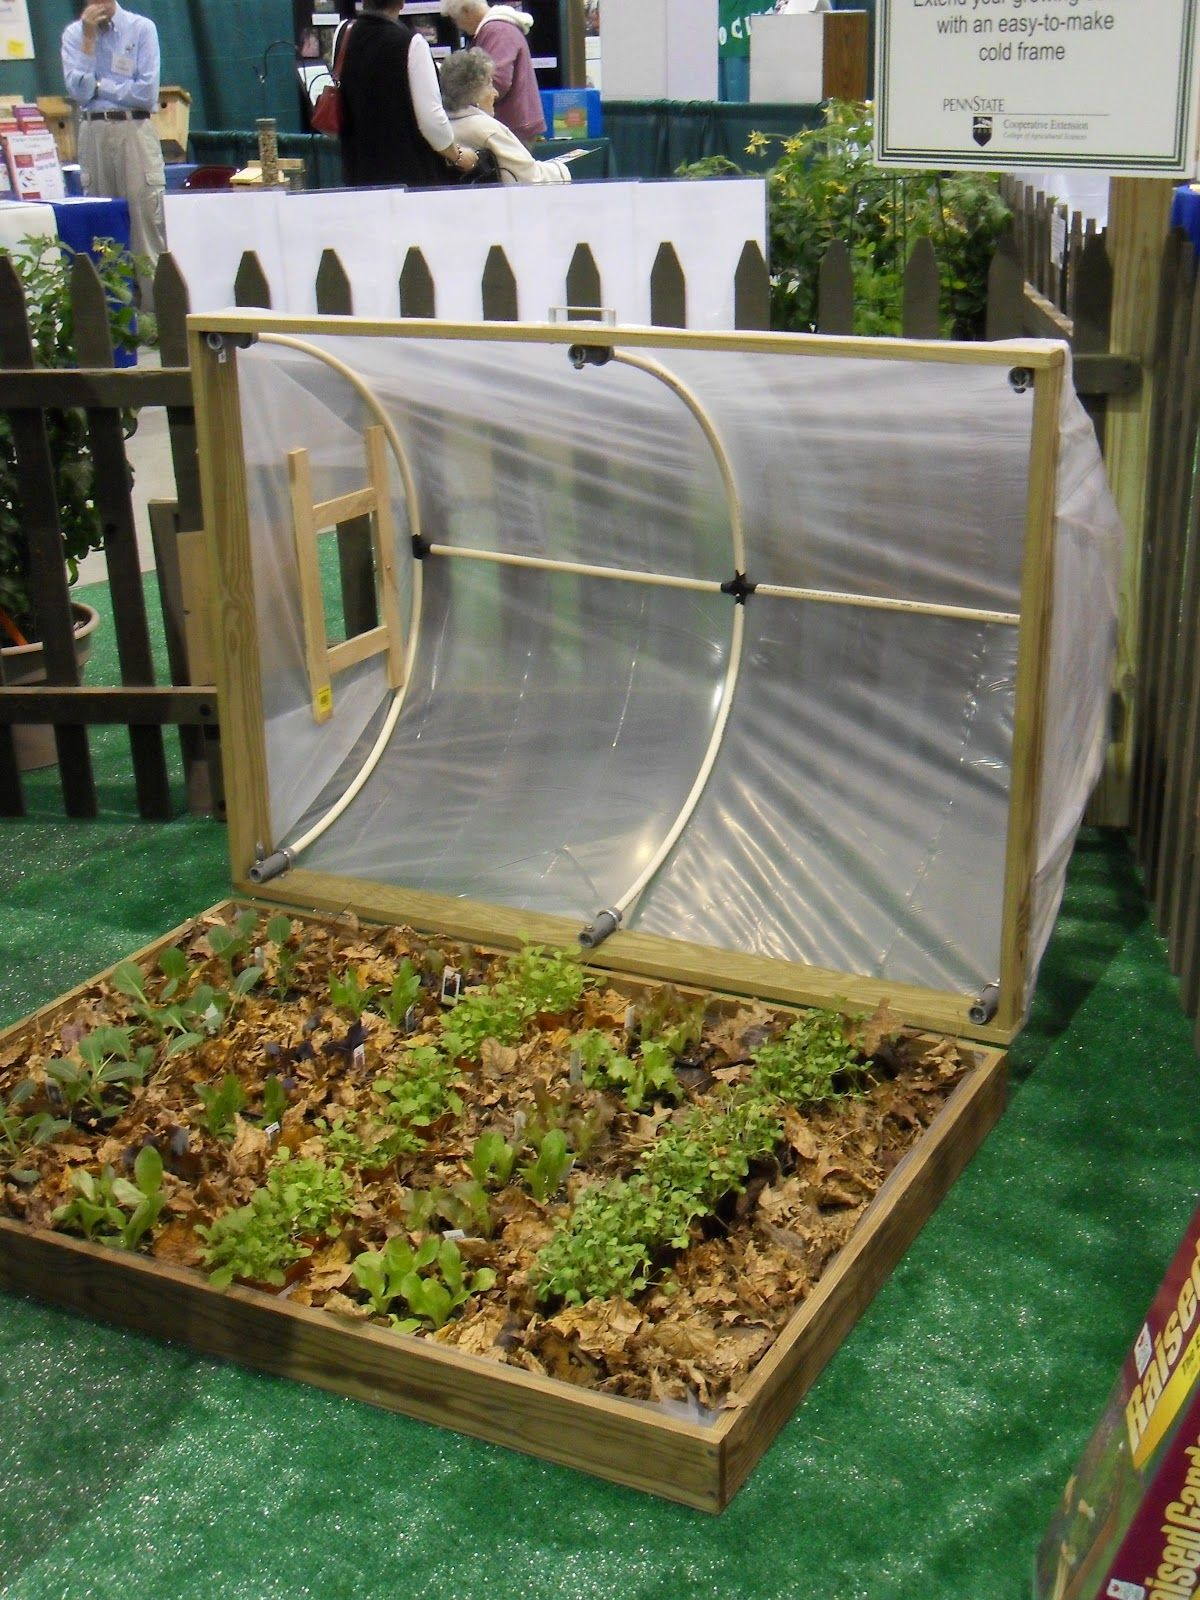 Pallet Greenhouse Mini With Easy Open Roof